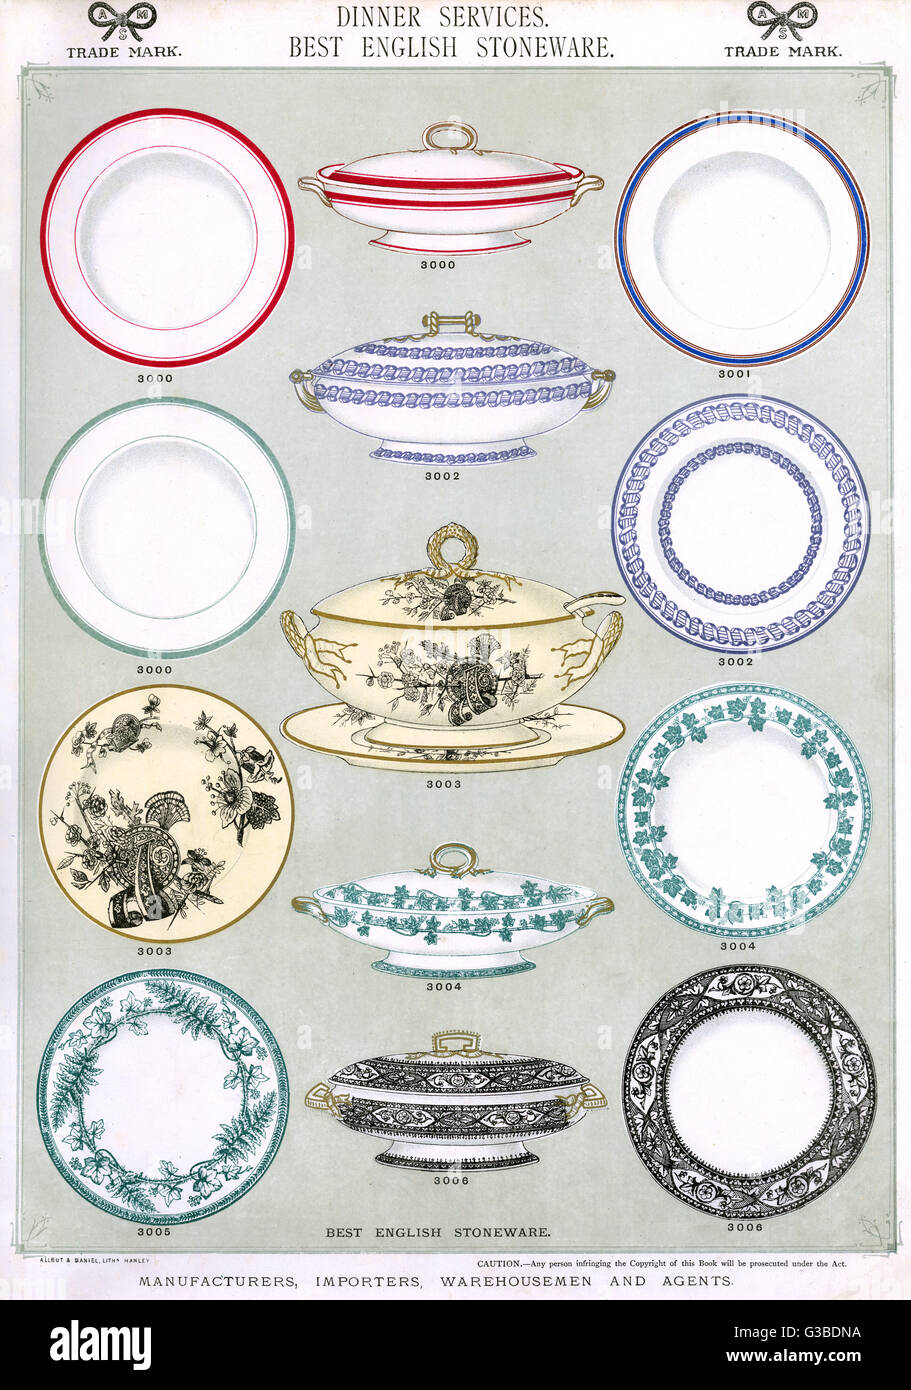 Dinner Services Best English Stoneware Plate 1 showing patterned and plain plates covered serving dishes and a tureen. Date circa 1880s  sc 1 st  Alamy & Dinner Services Best English Stoneware Plate 1 showing patterned ...